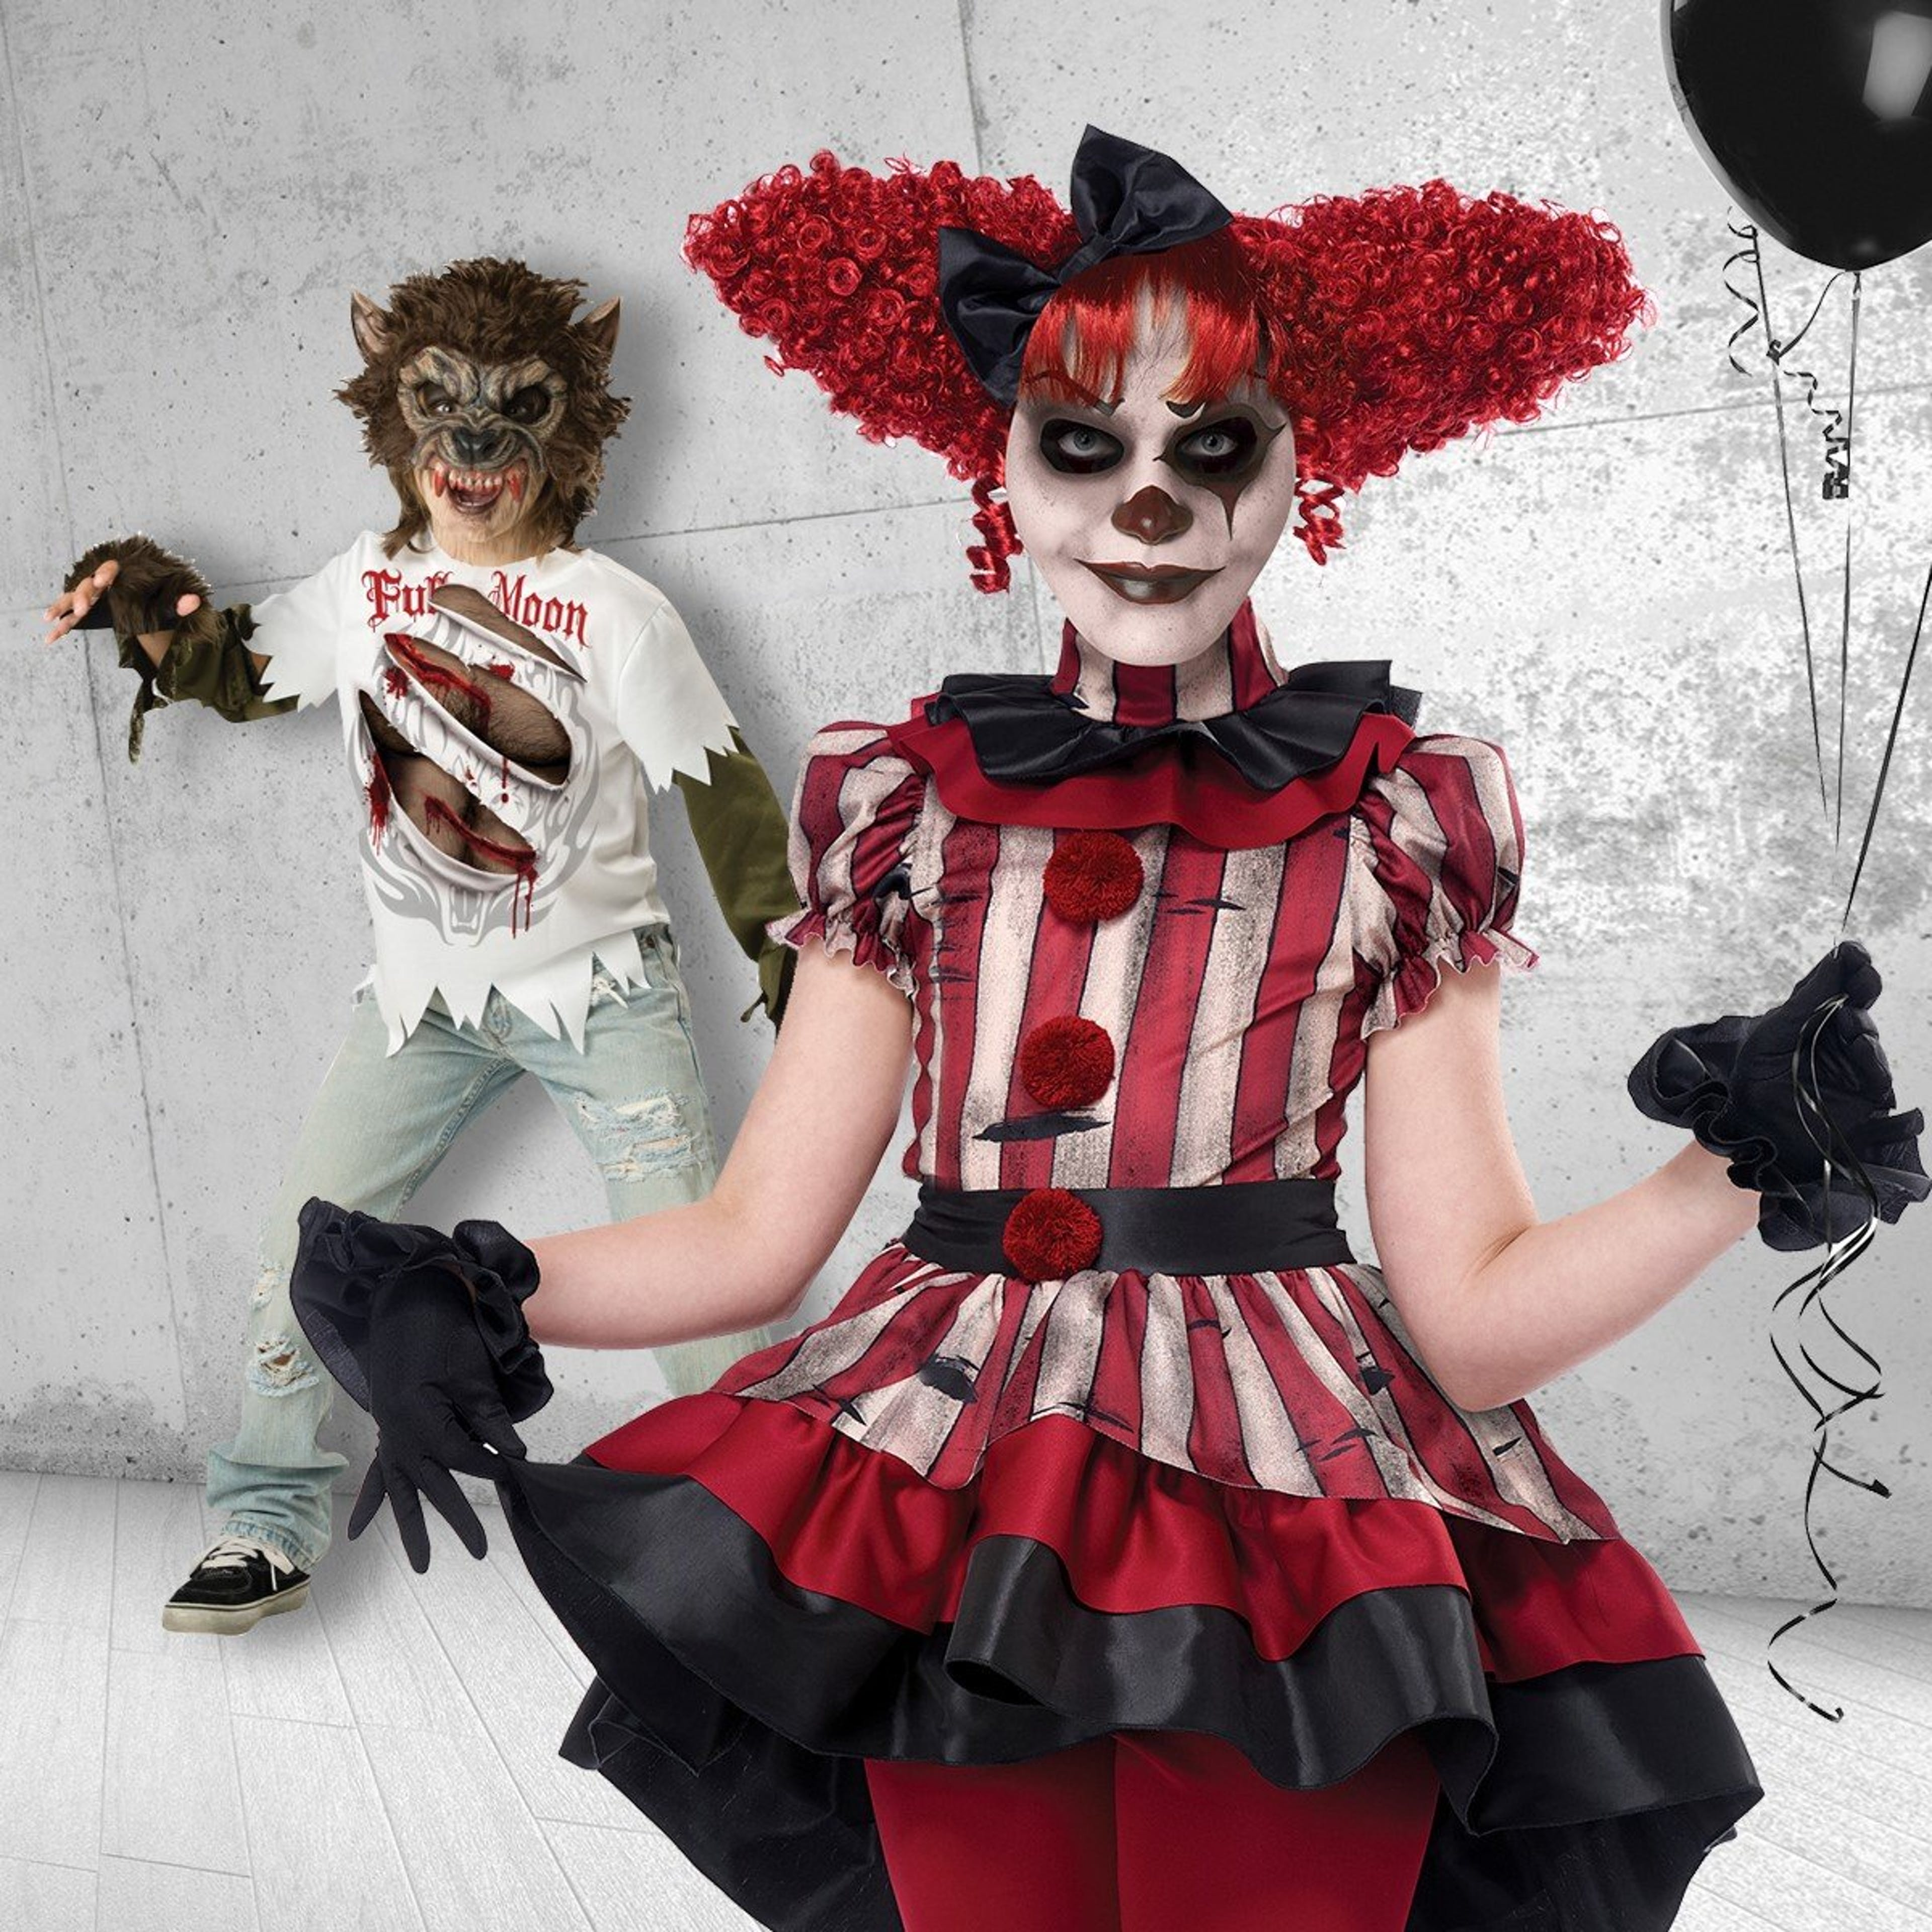 Shows a scary clown kids Halloween costume and Full Moon Werewolf